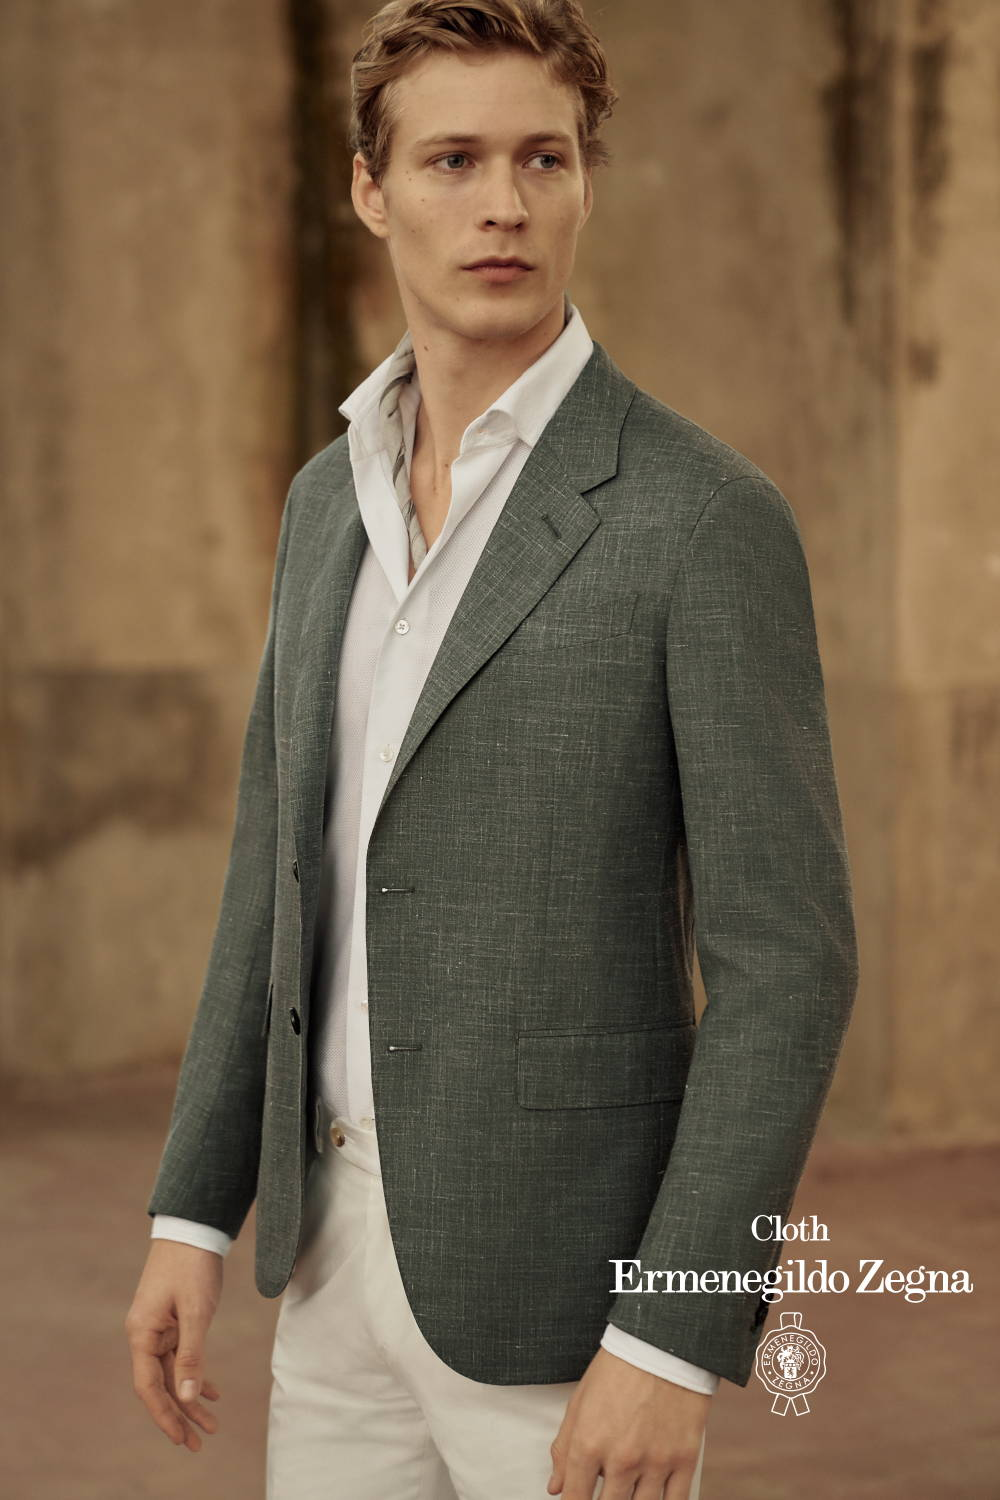 the-lancelot-hong-kong-bespoke-tailor-gallery-casual-4